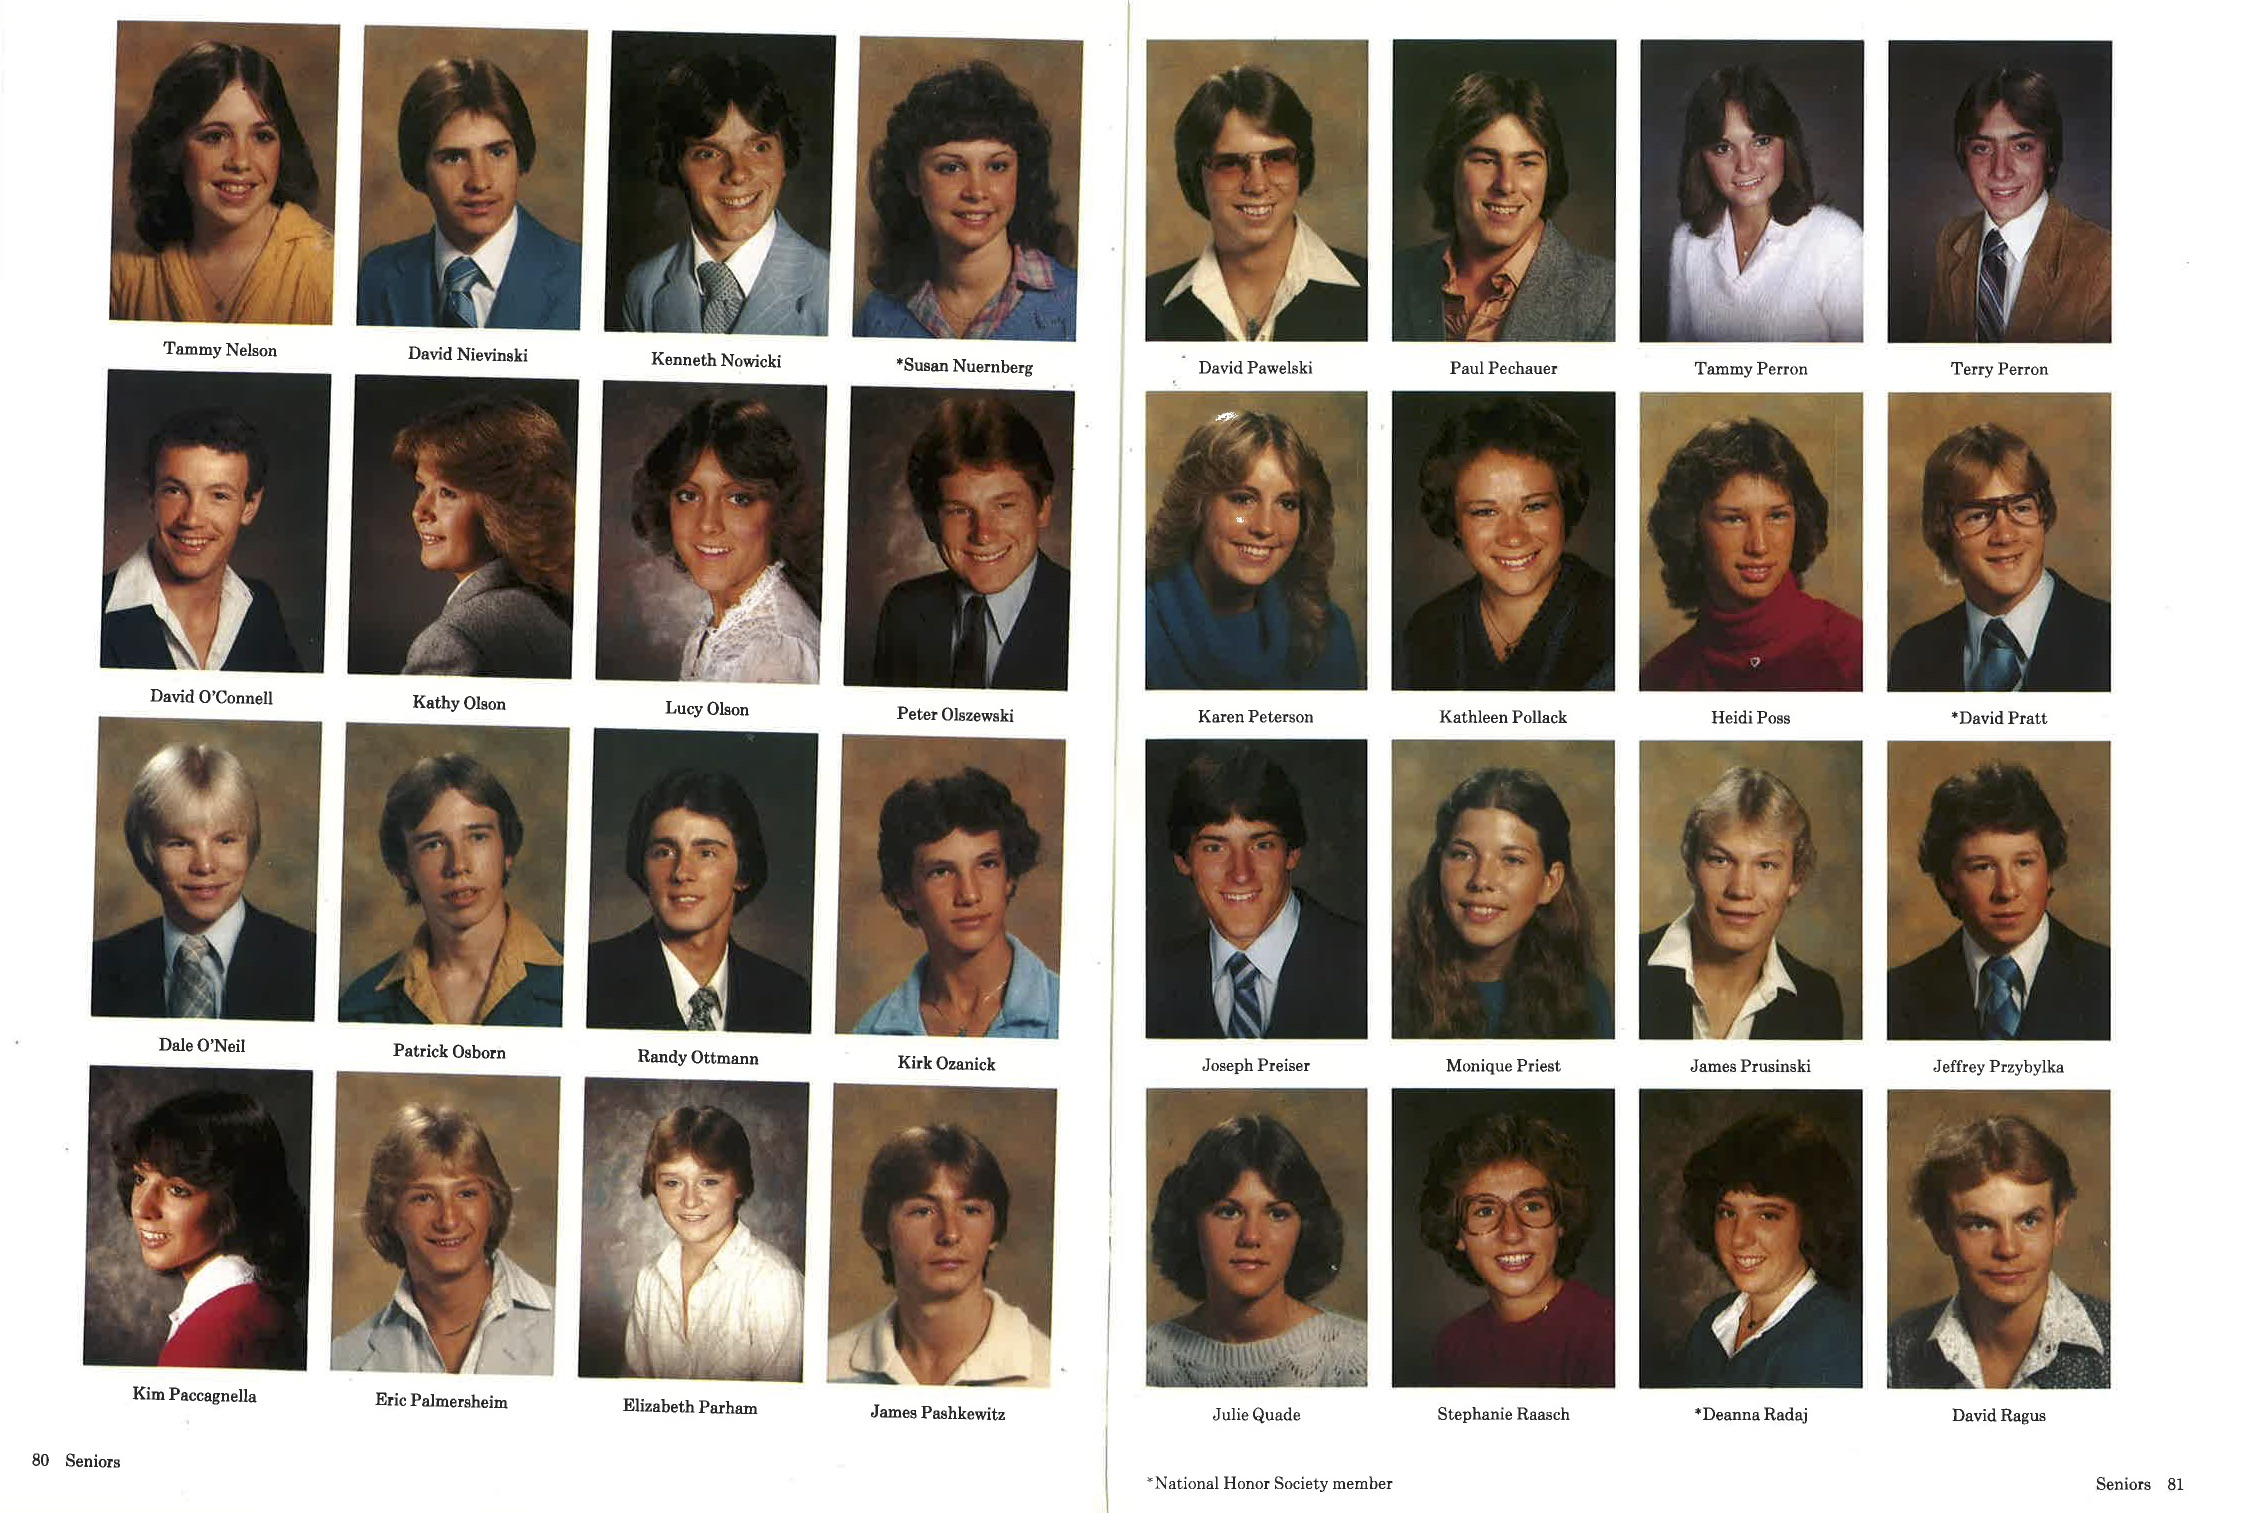 1982_Yearbook_80.jpg